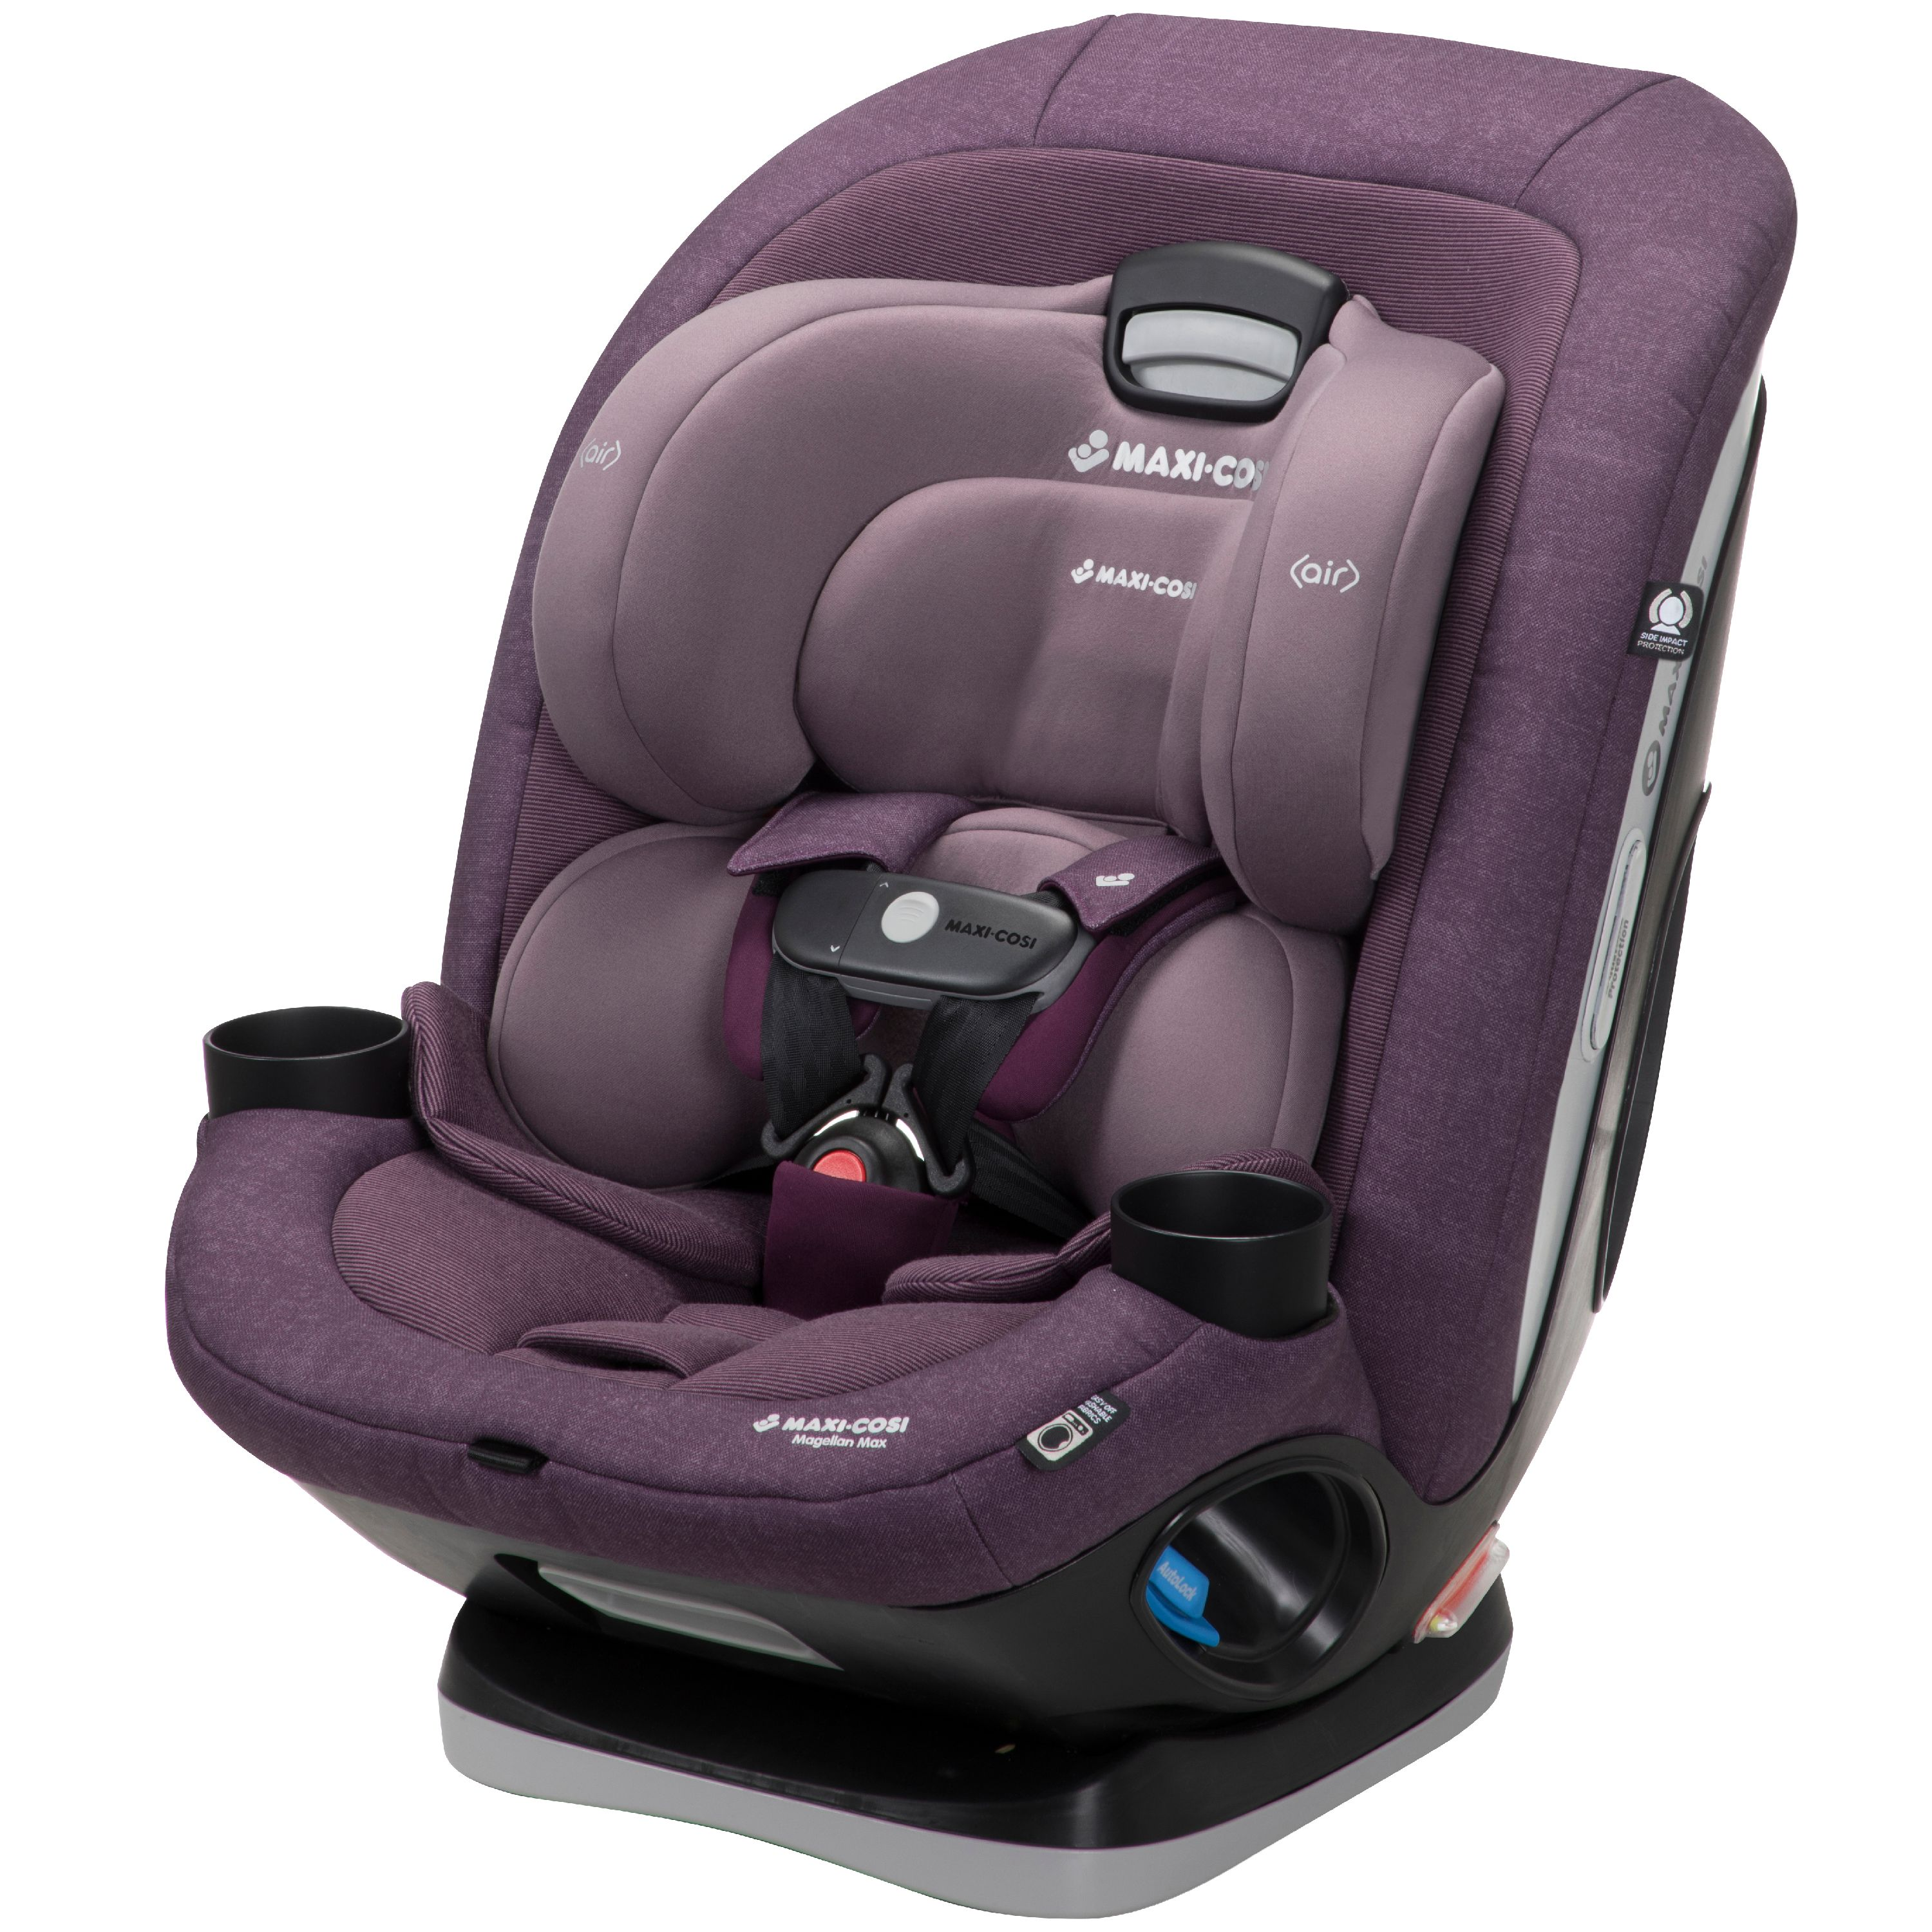 Maxi Cosi Magellan Max 5-in-1 Convertible Car Seat